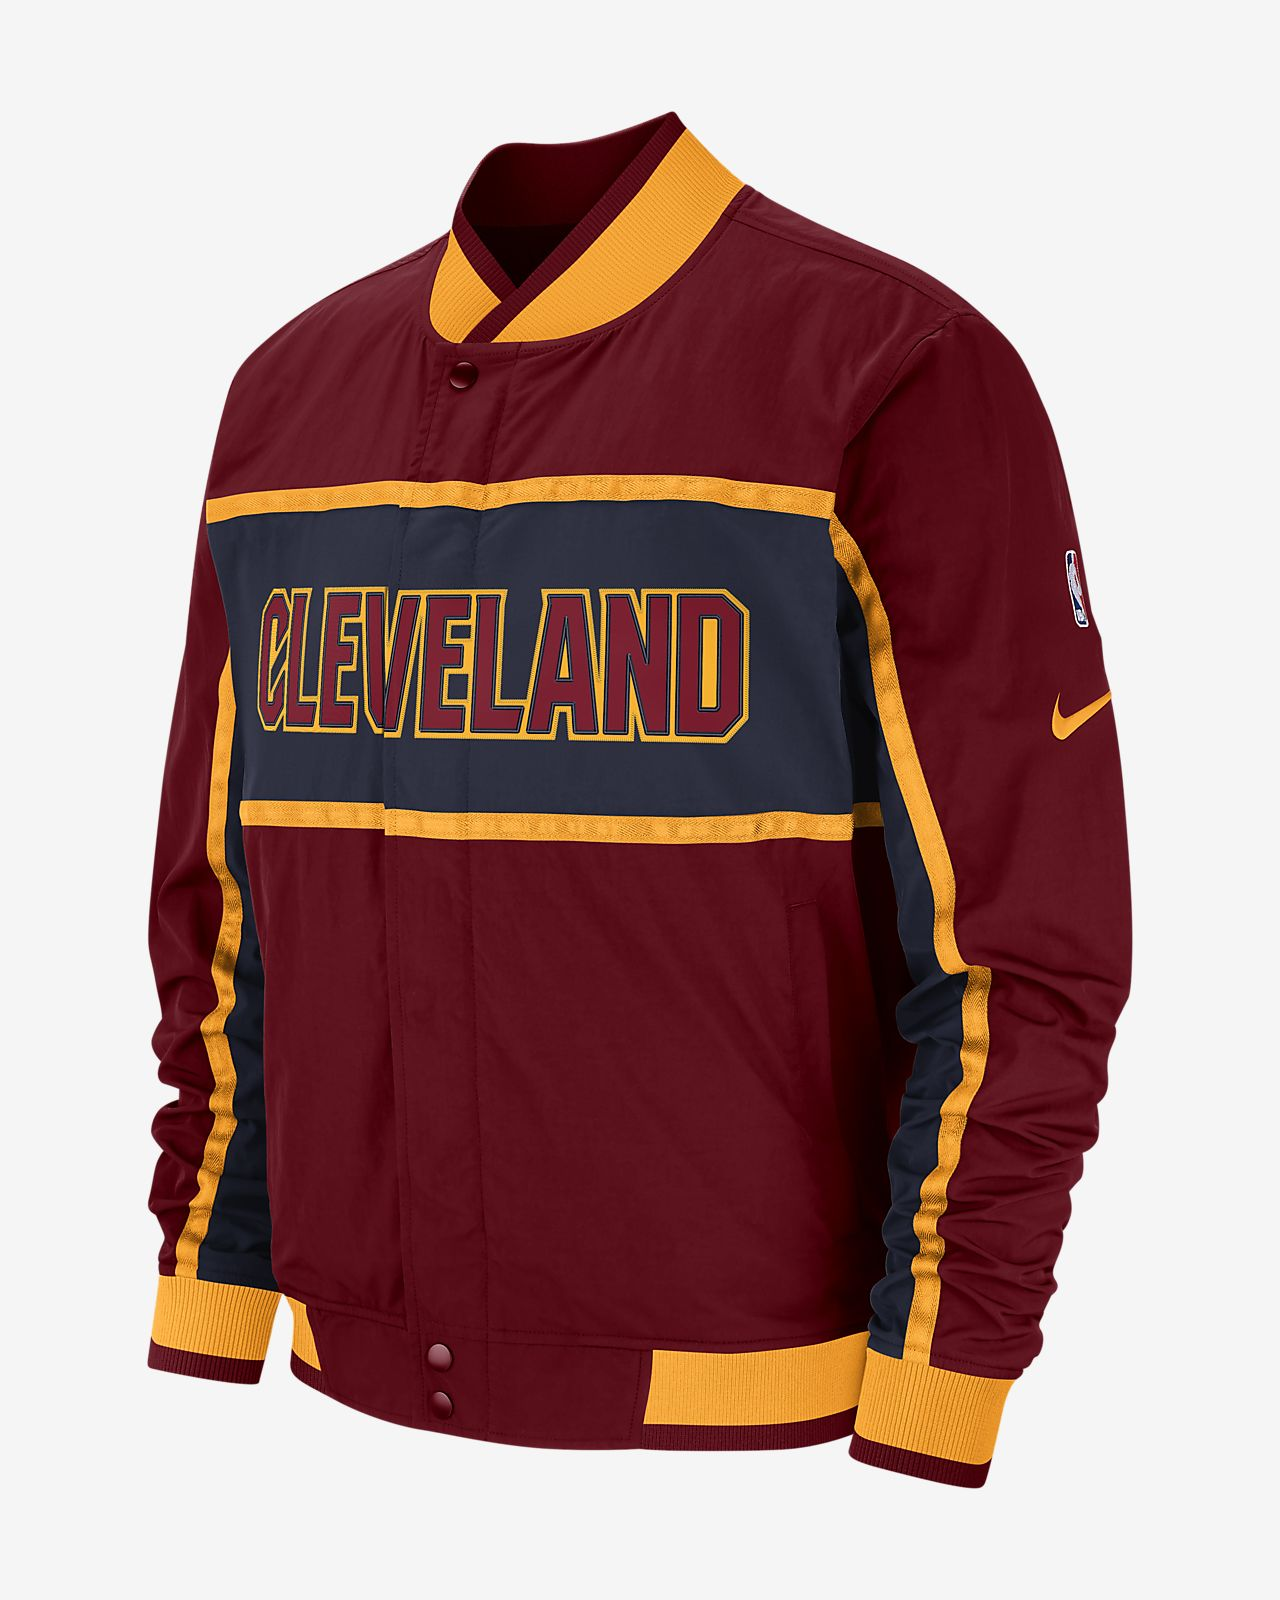 Nba Homme Courtside Pour Cavaliers Nike Veste Cleveland WBndfqwf0